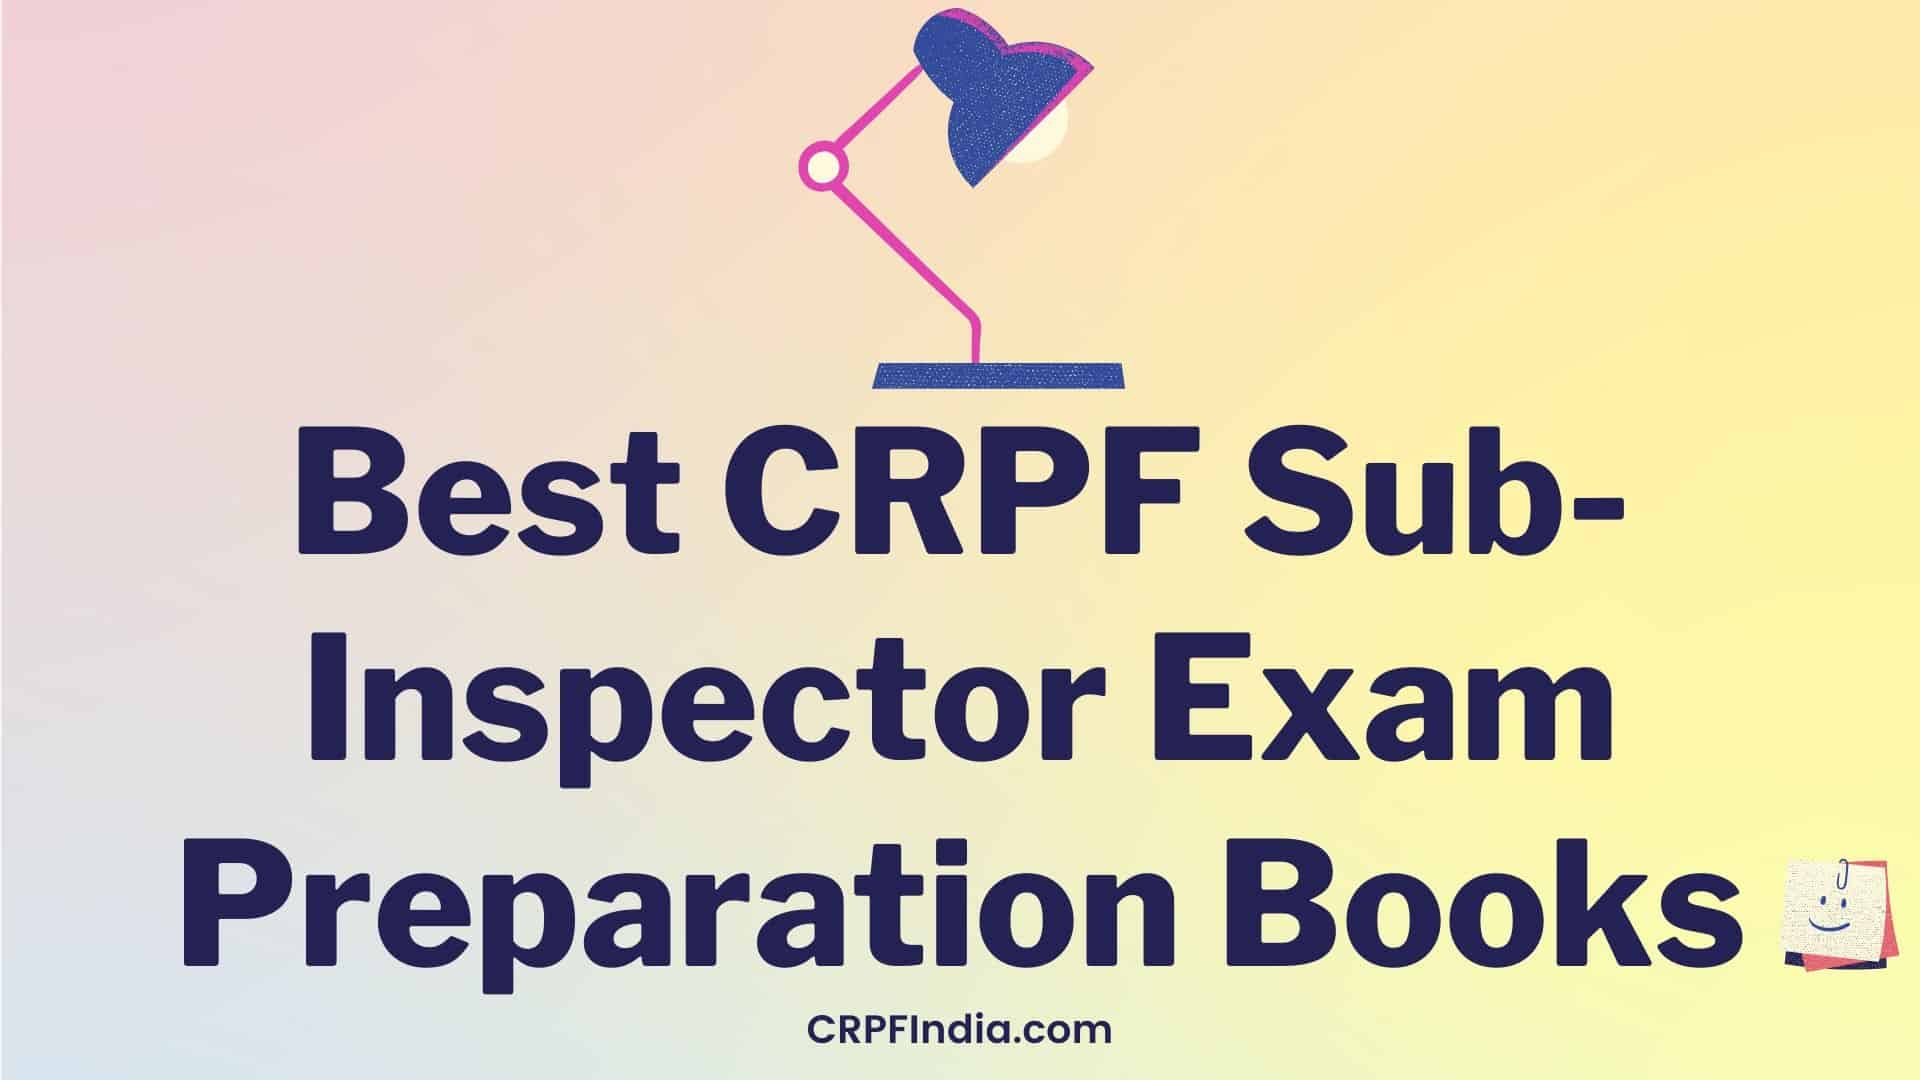 Photo of CRPF SI LDCE GD Books Best Preparation Books List Buy Online Group B